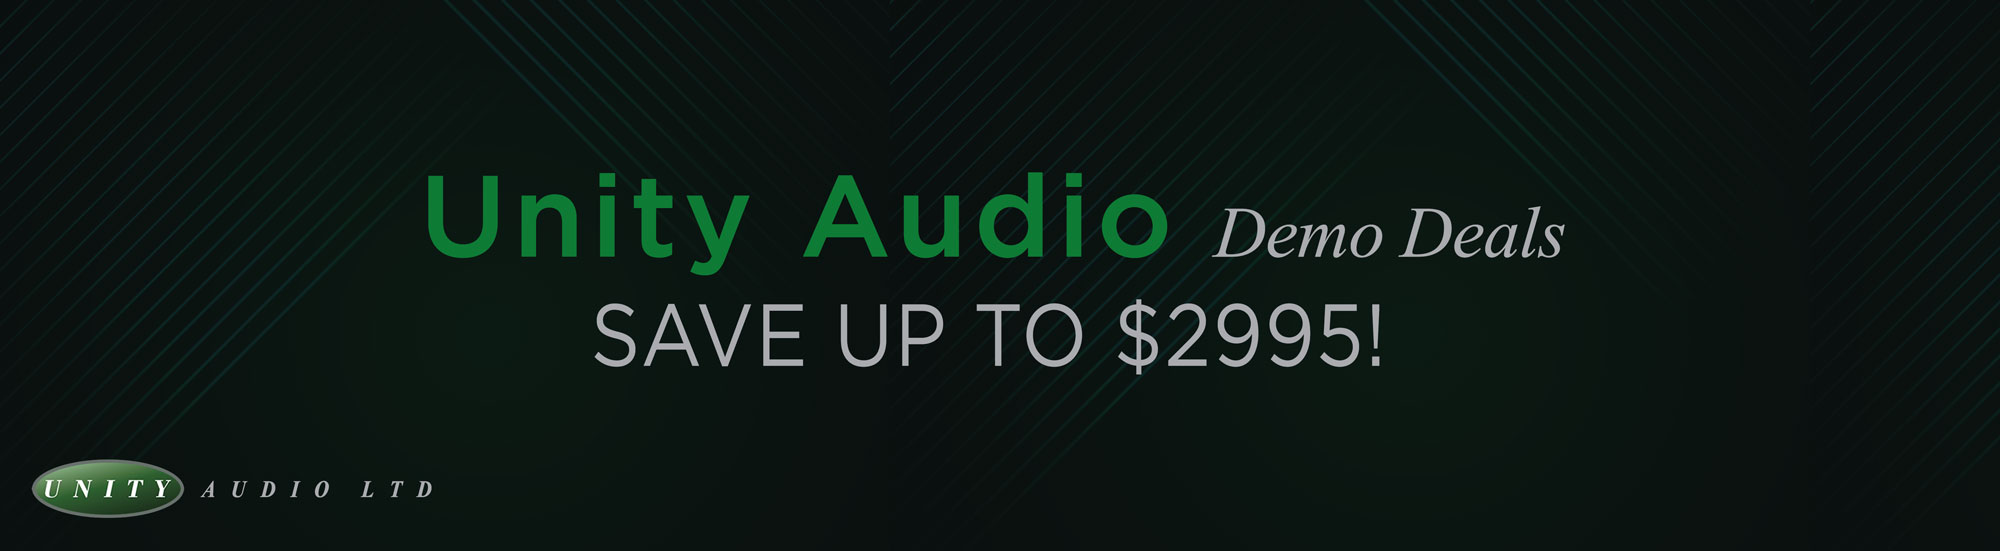 Unity Audio Demo Sale